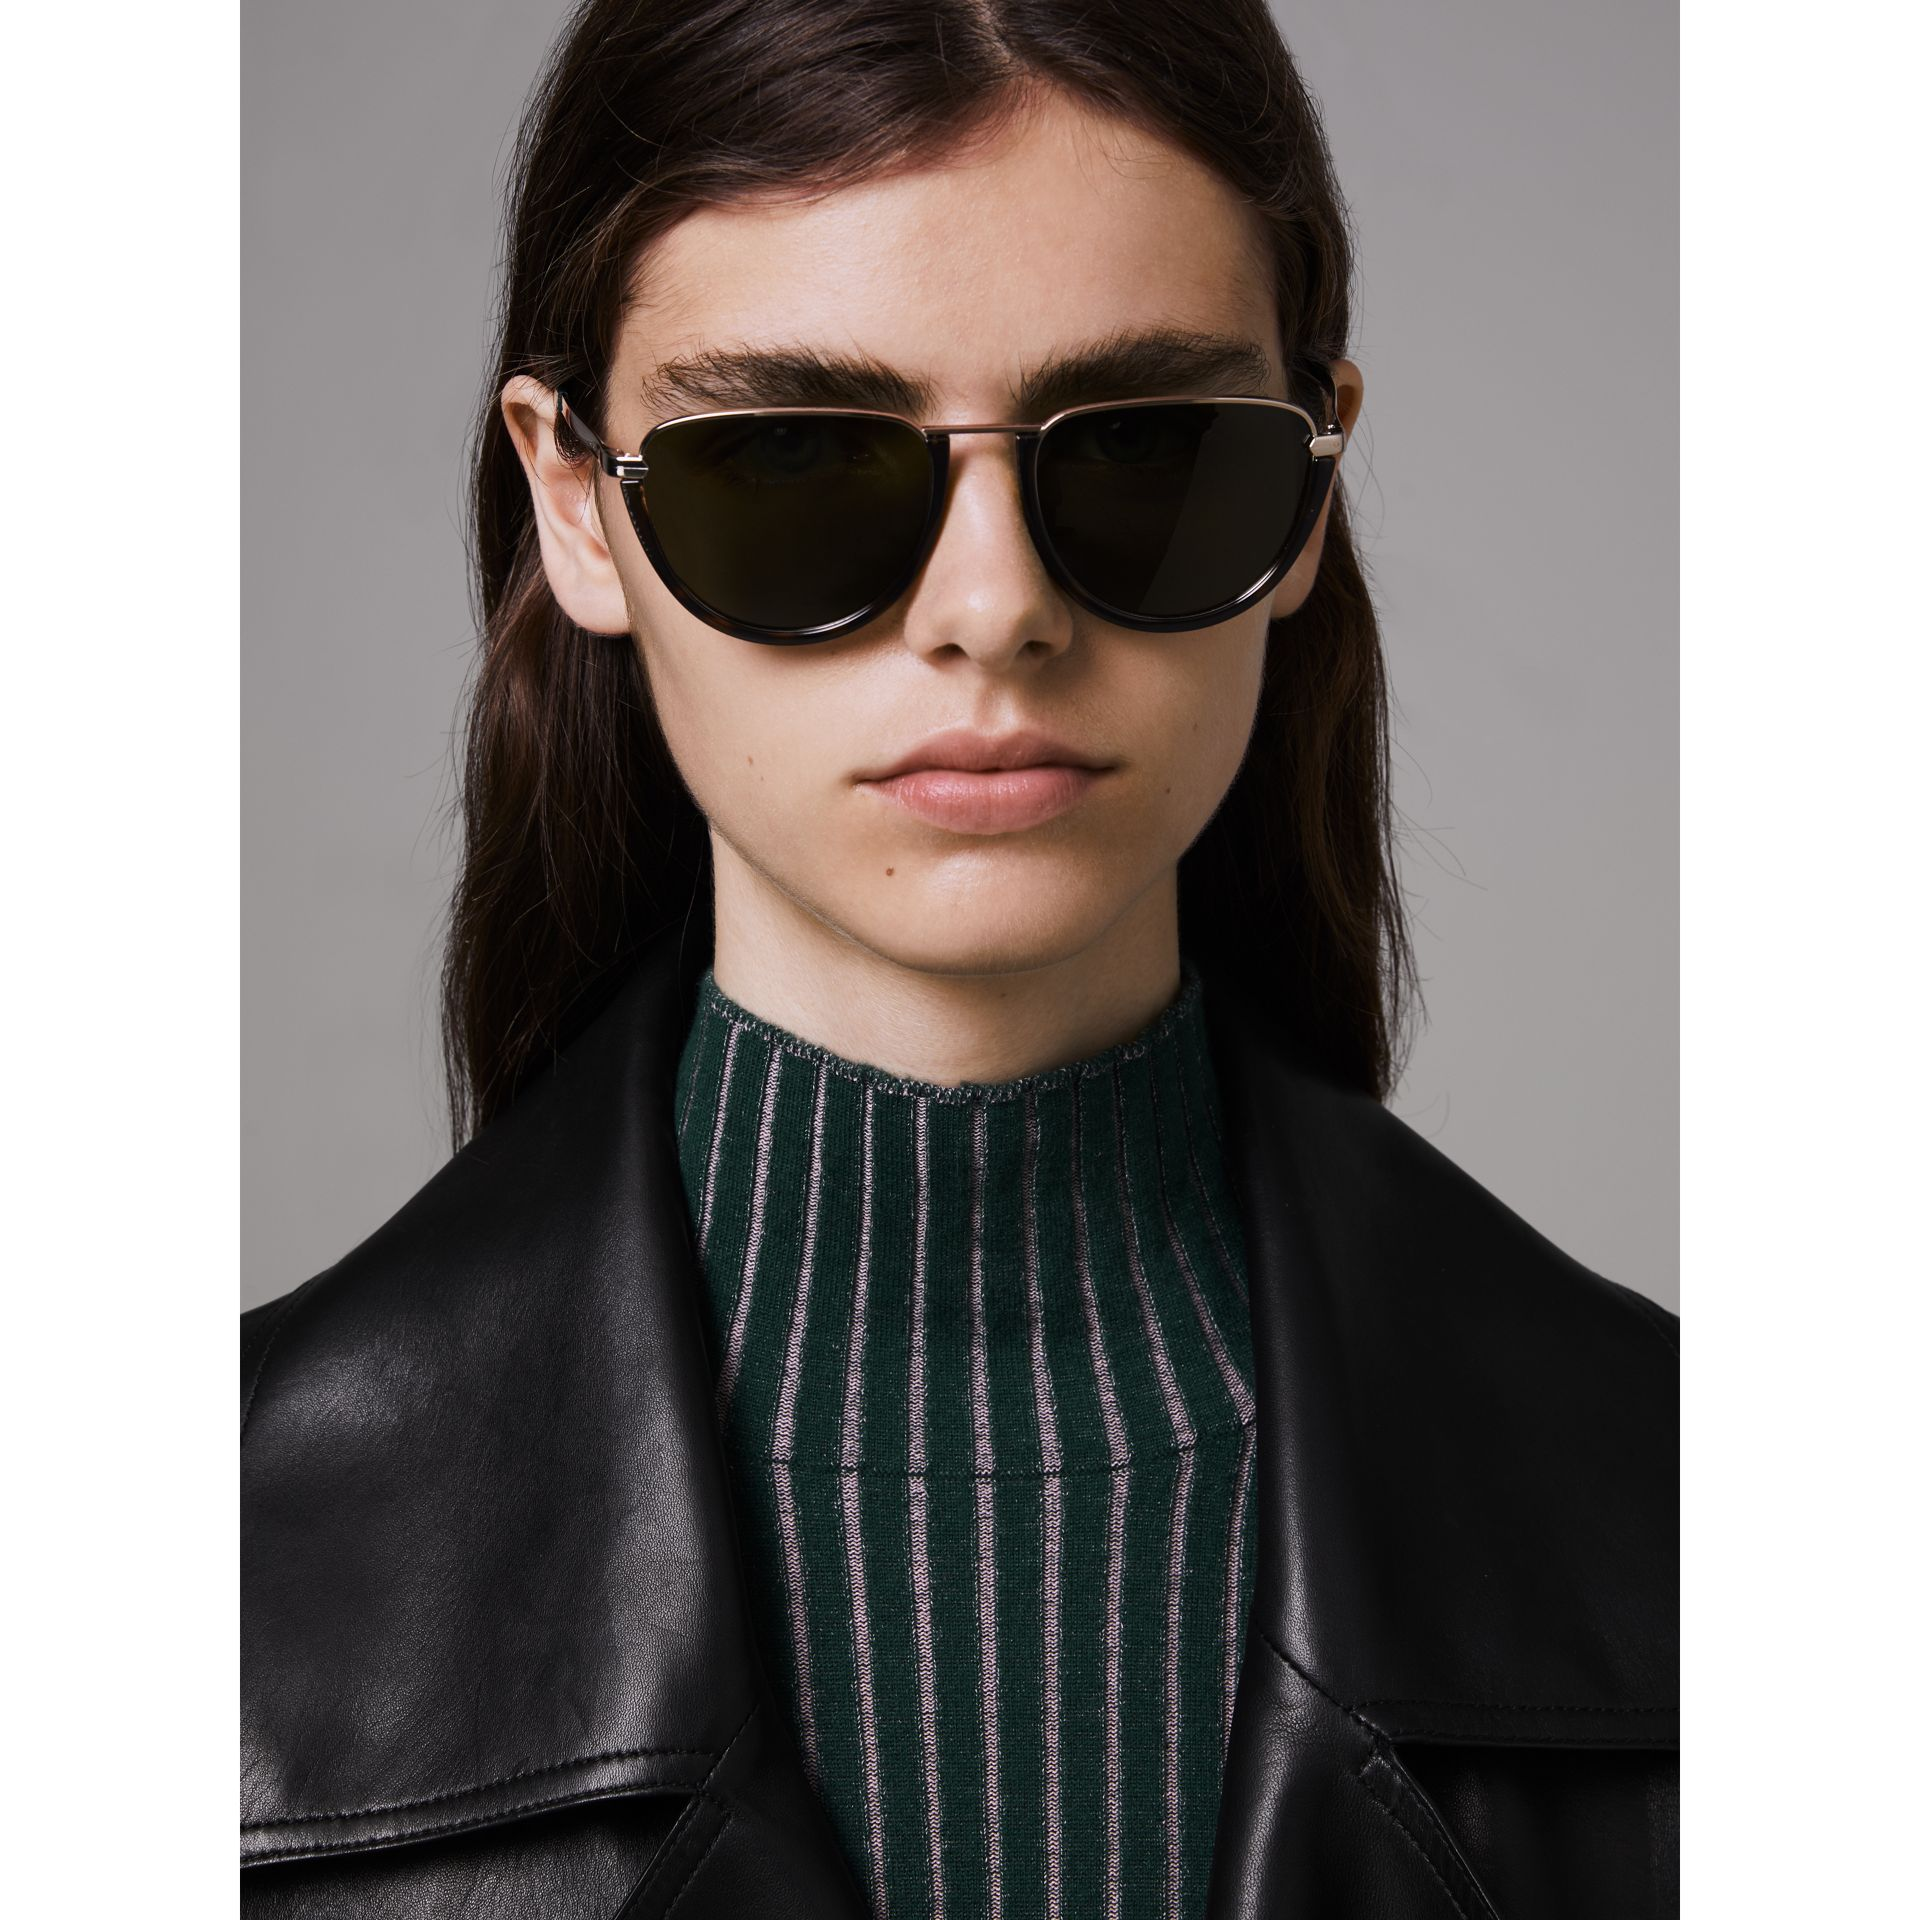 Half Moon Pilot Round Frame Sunglasses in Tortoise Shell - Women | Burberry United Kingdom - gallery image 3